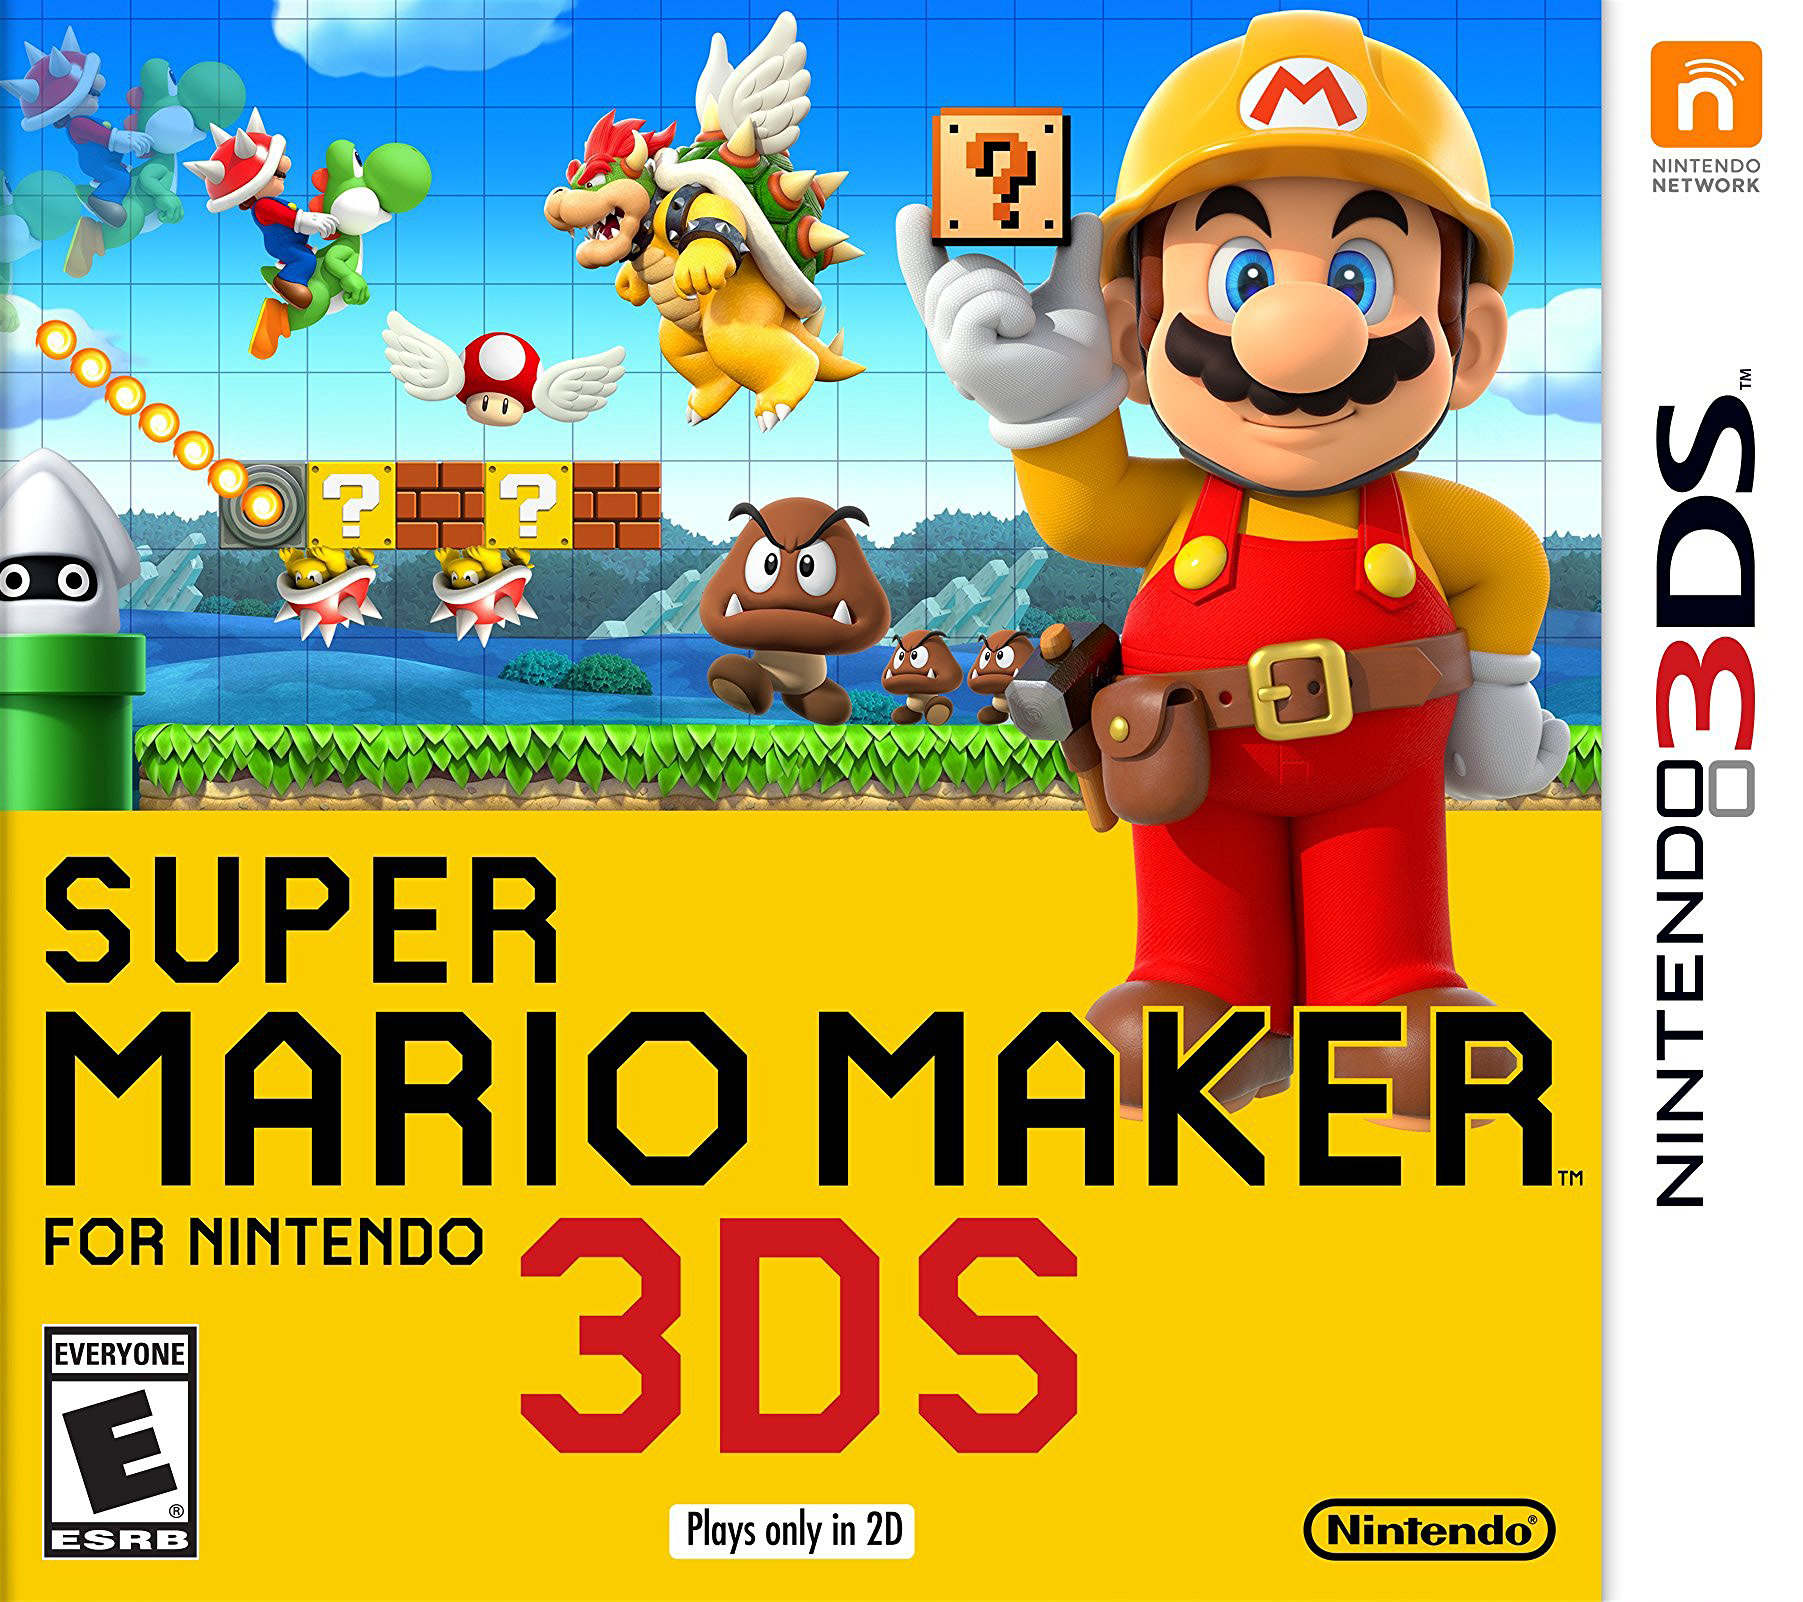 Super Mario Maker for Nintendo 3DS | Kaizo Mario Maker Wikia